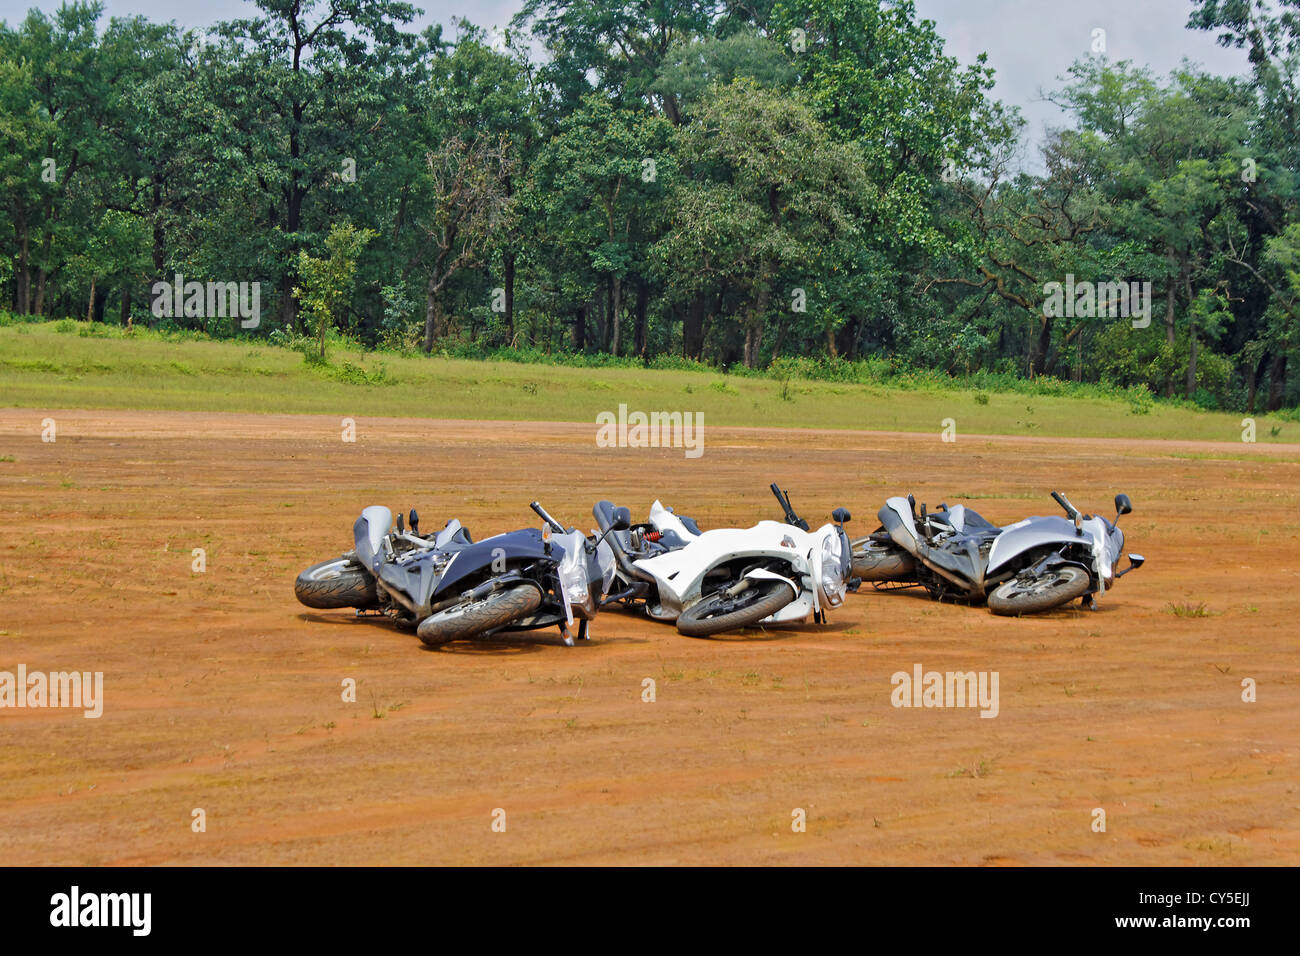 Three generic motorbikes dropped on their side. Concept, play dead they might go away. Location of shot India - Stock Image